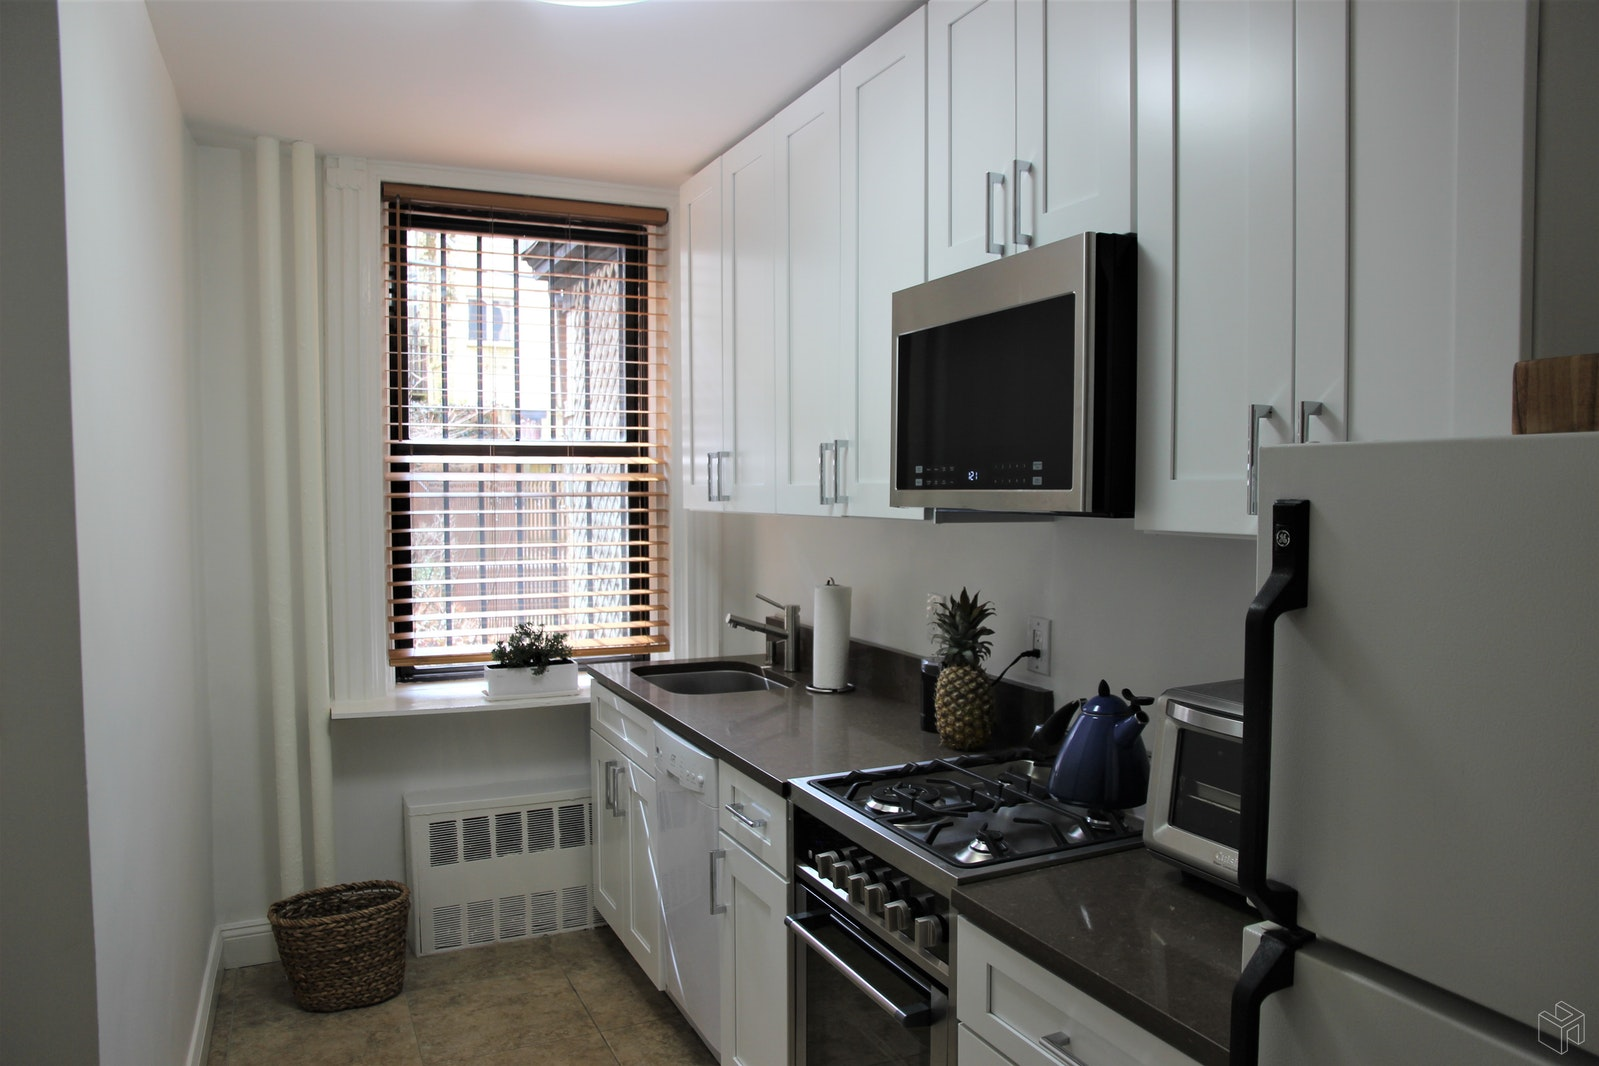 Prime Loc 1BR Plus Den, Park Slope, Brooklyn, NY, 11215, $2,950, Rented Property, Halstead Real Estate, Photo 2